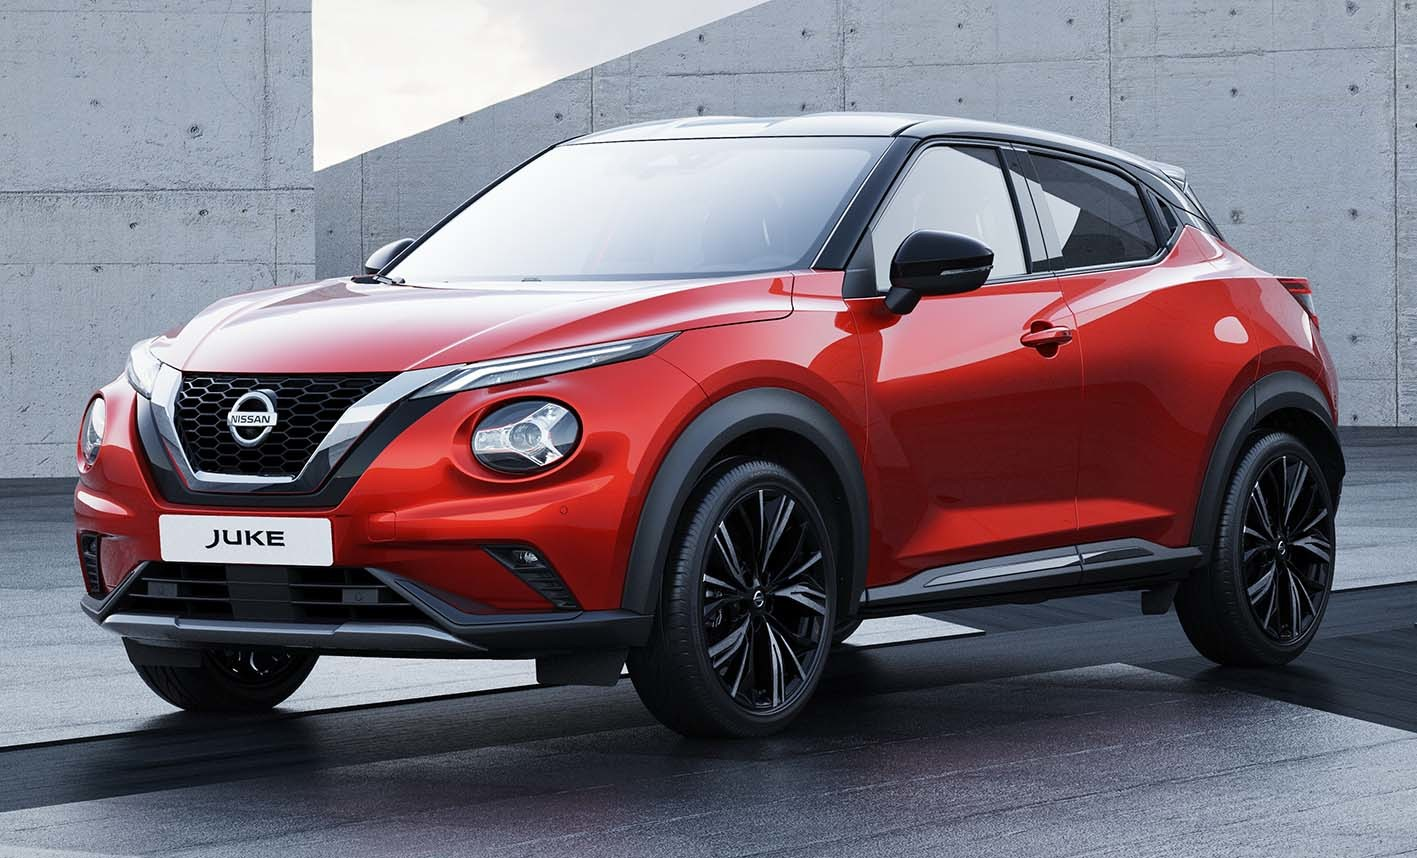 New-Nissan-JUKE-Unveil-CGI-14-source.jpg